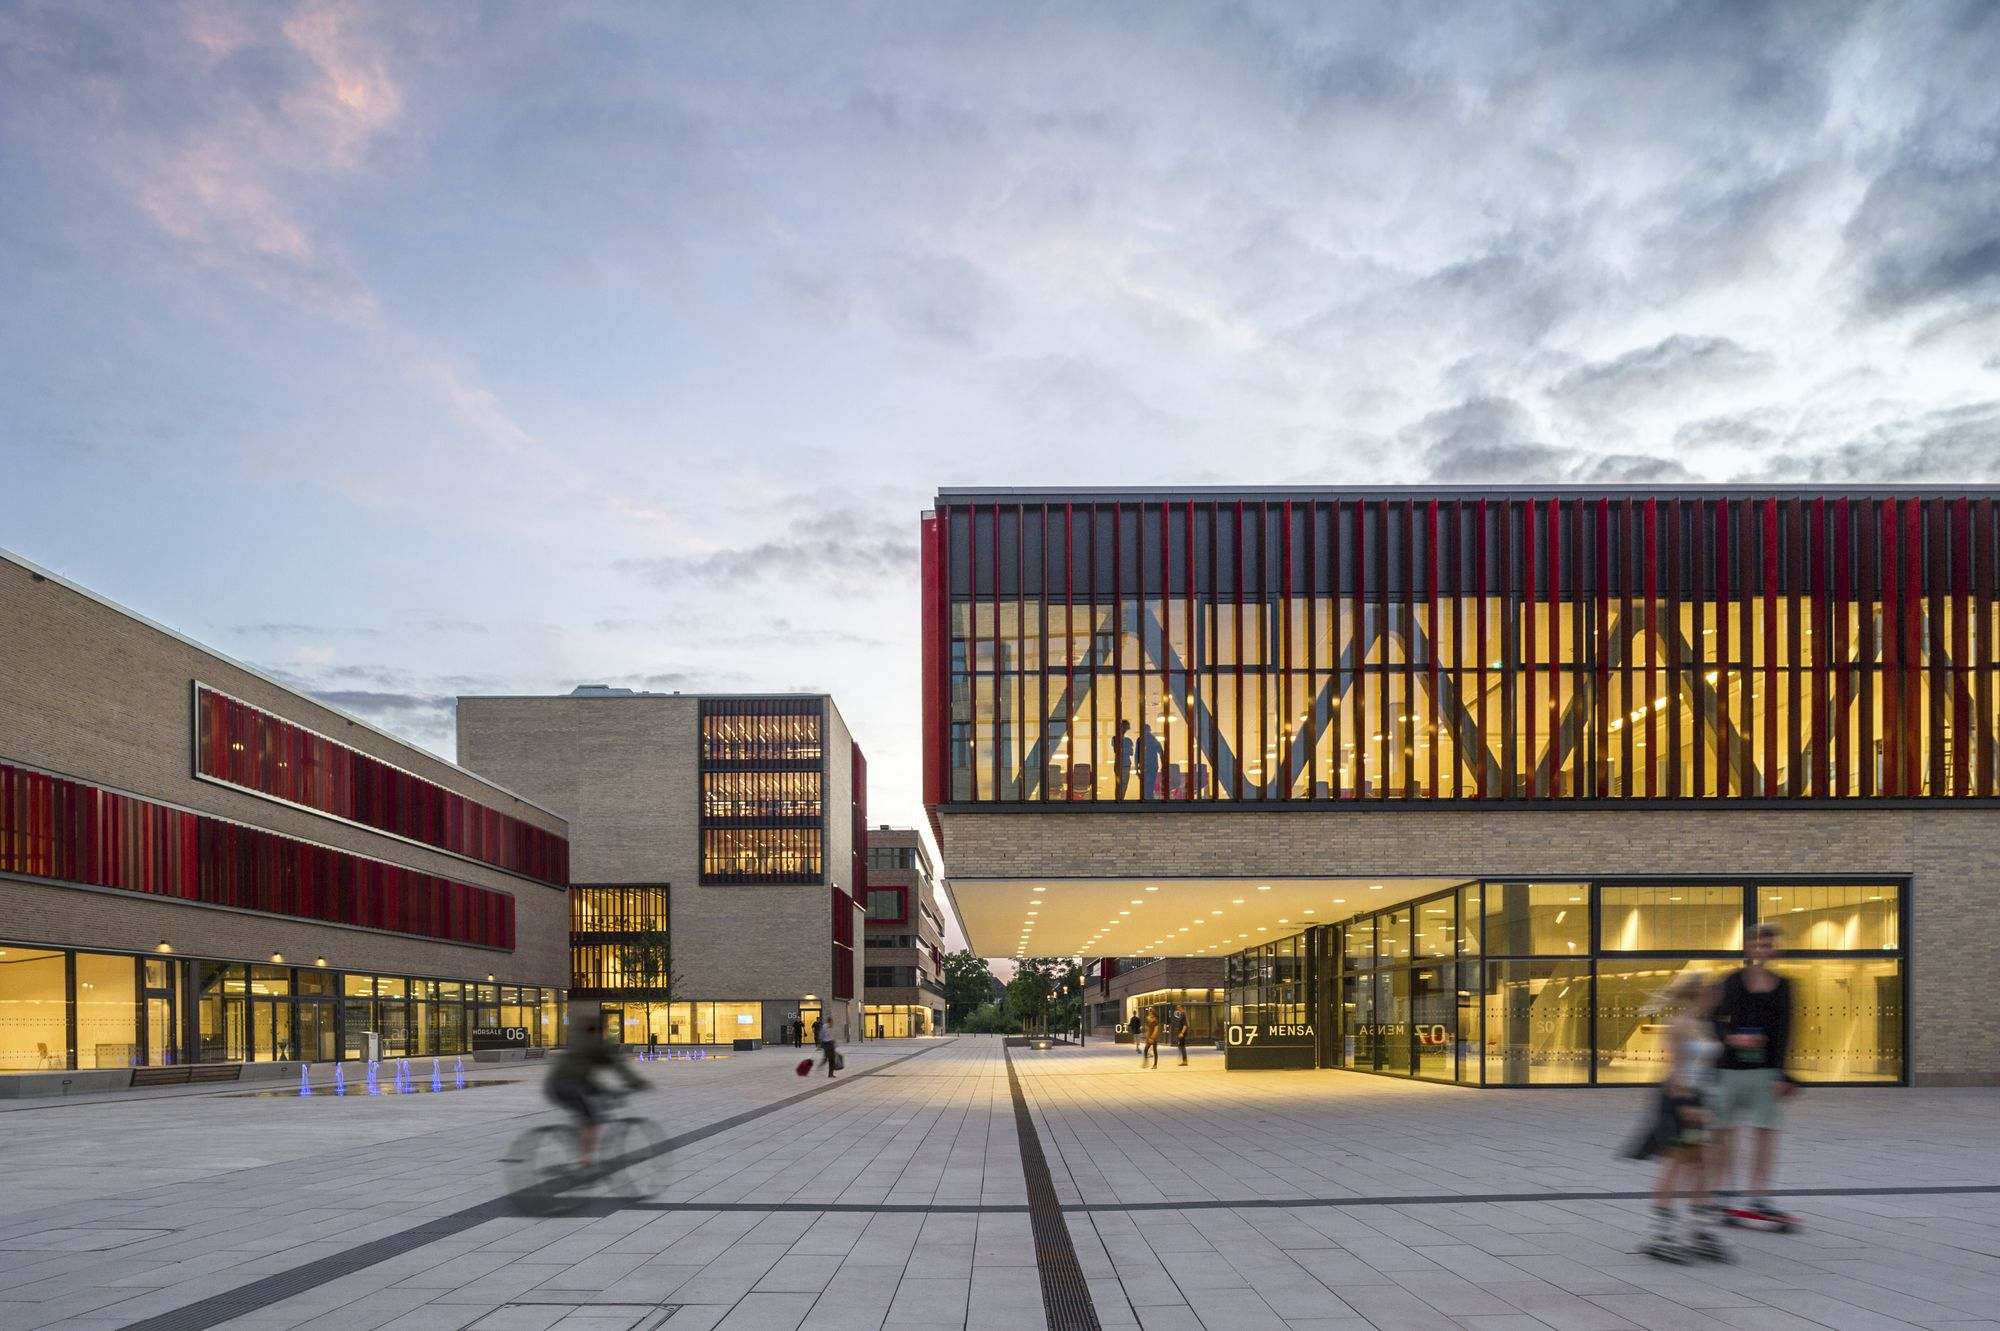 HPP Architects + ASTOC is part of architecture - Completed in 2016 in Mülheim, Germany  Images by Christa Lachenmaier  The Hochschule Ruhr West  University of Applied Sciences in Mülheim an der Ruhr, Germany, in short the HRW, is part of a nationwide development of